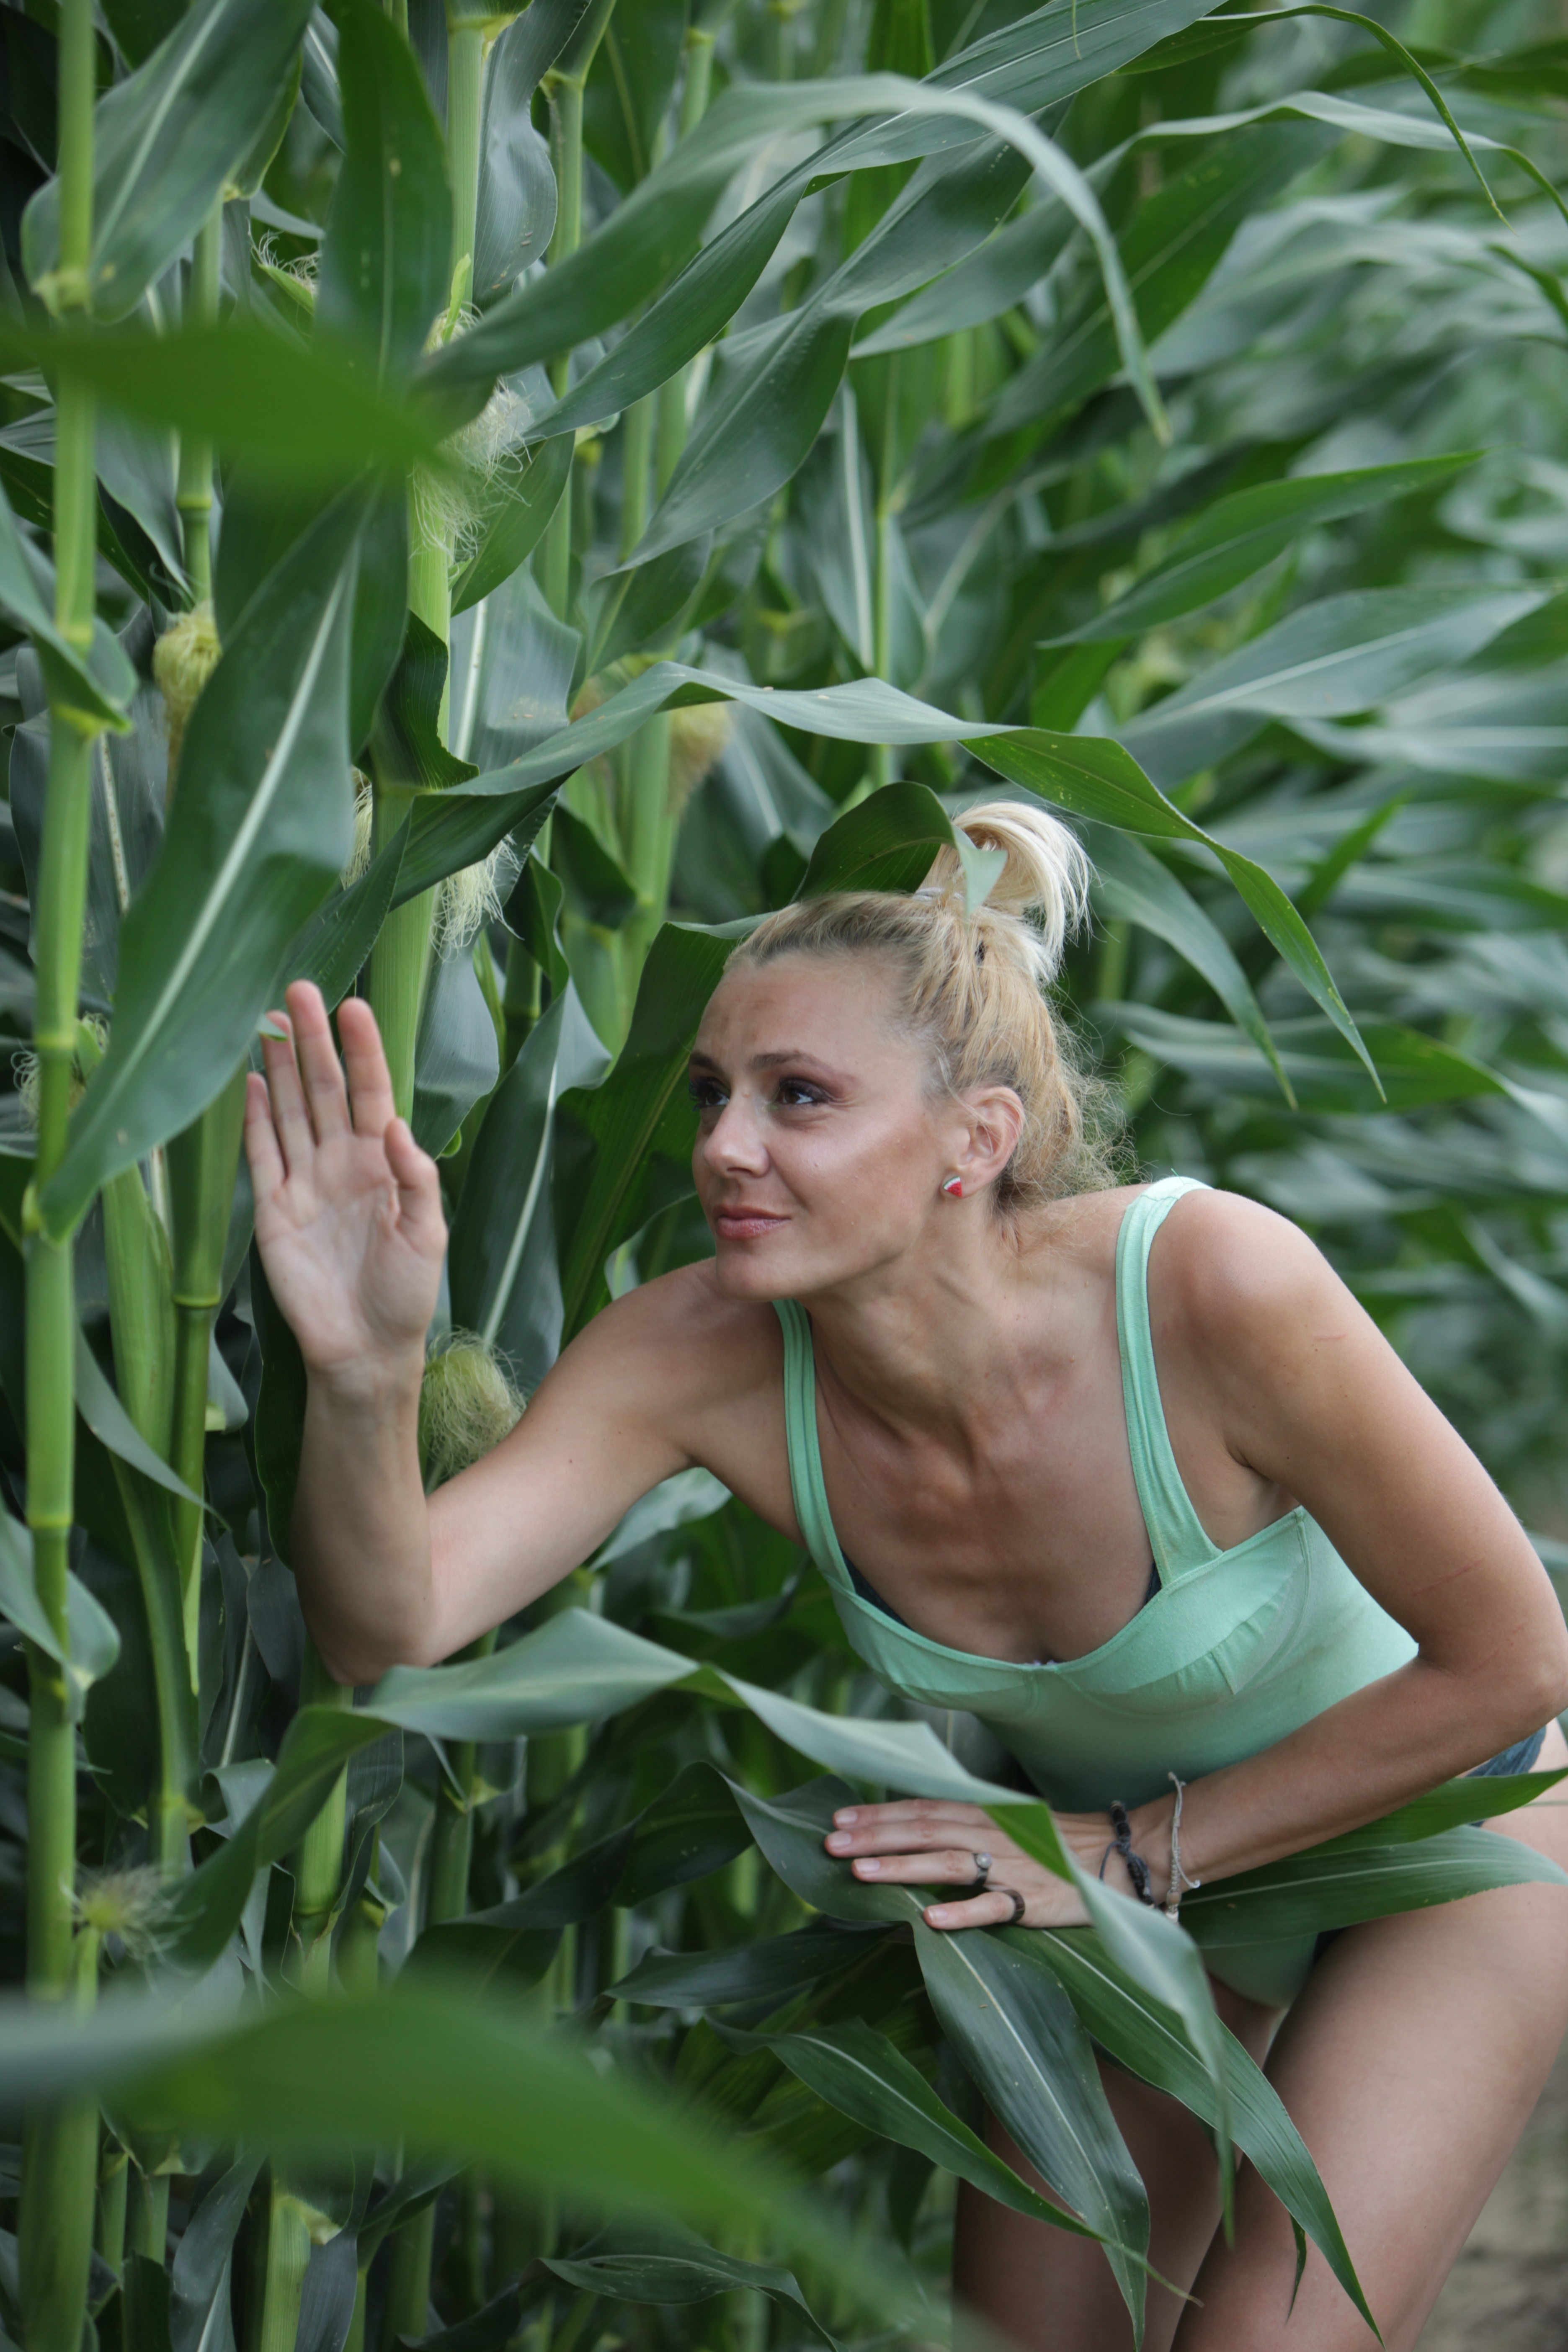 Woman Near Corn Plant